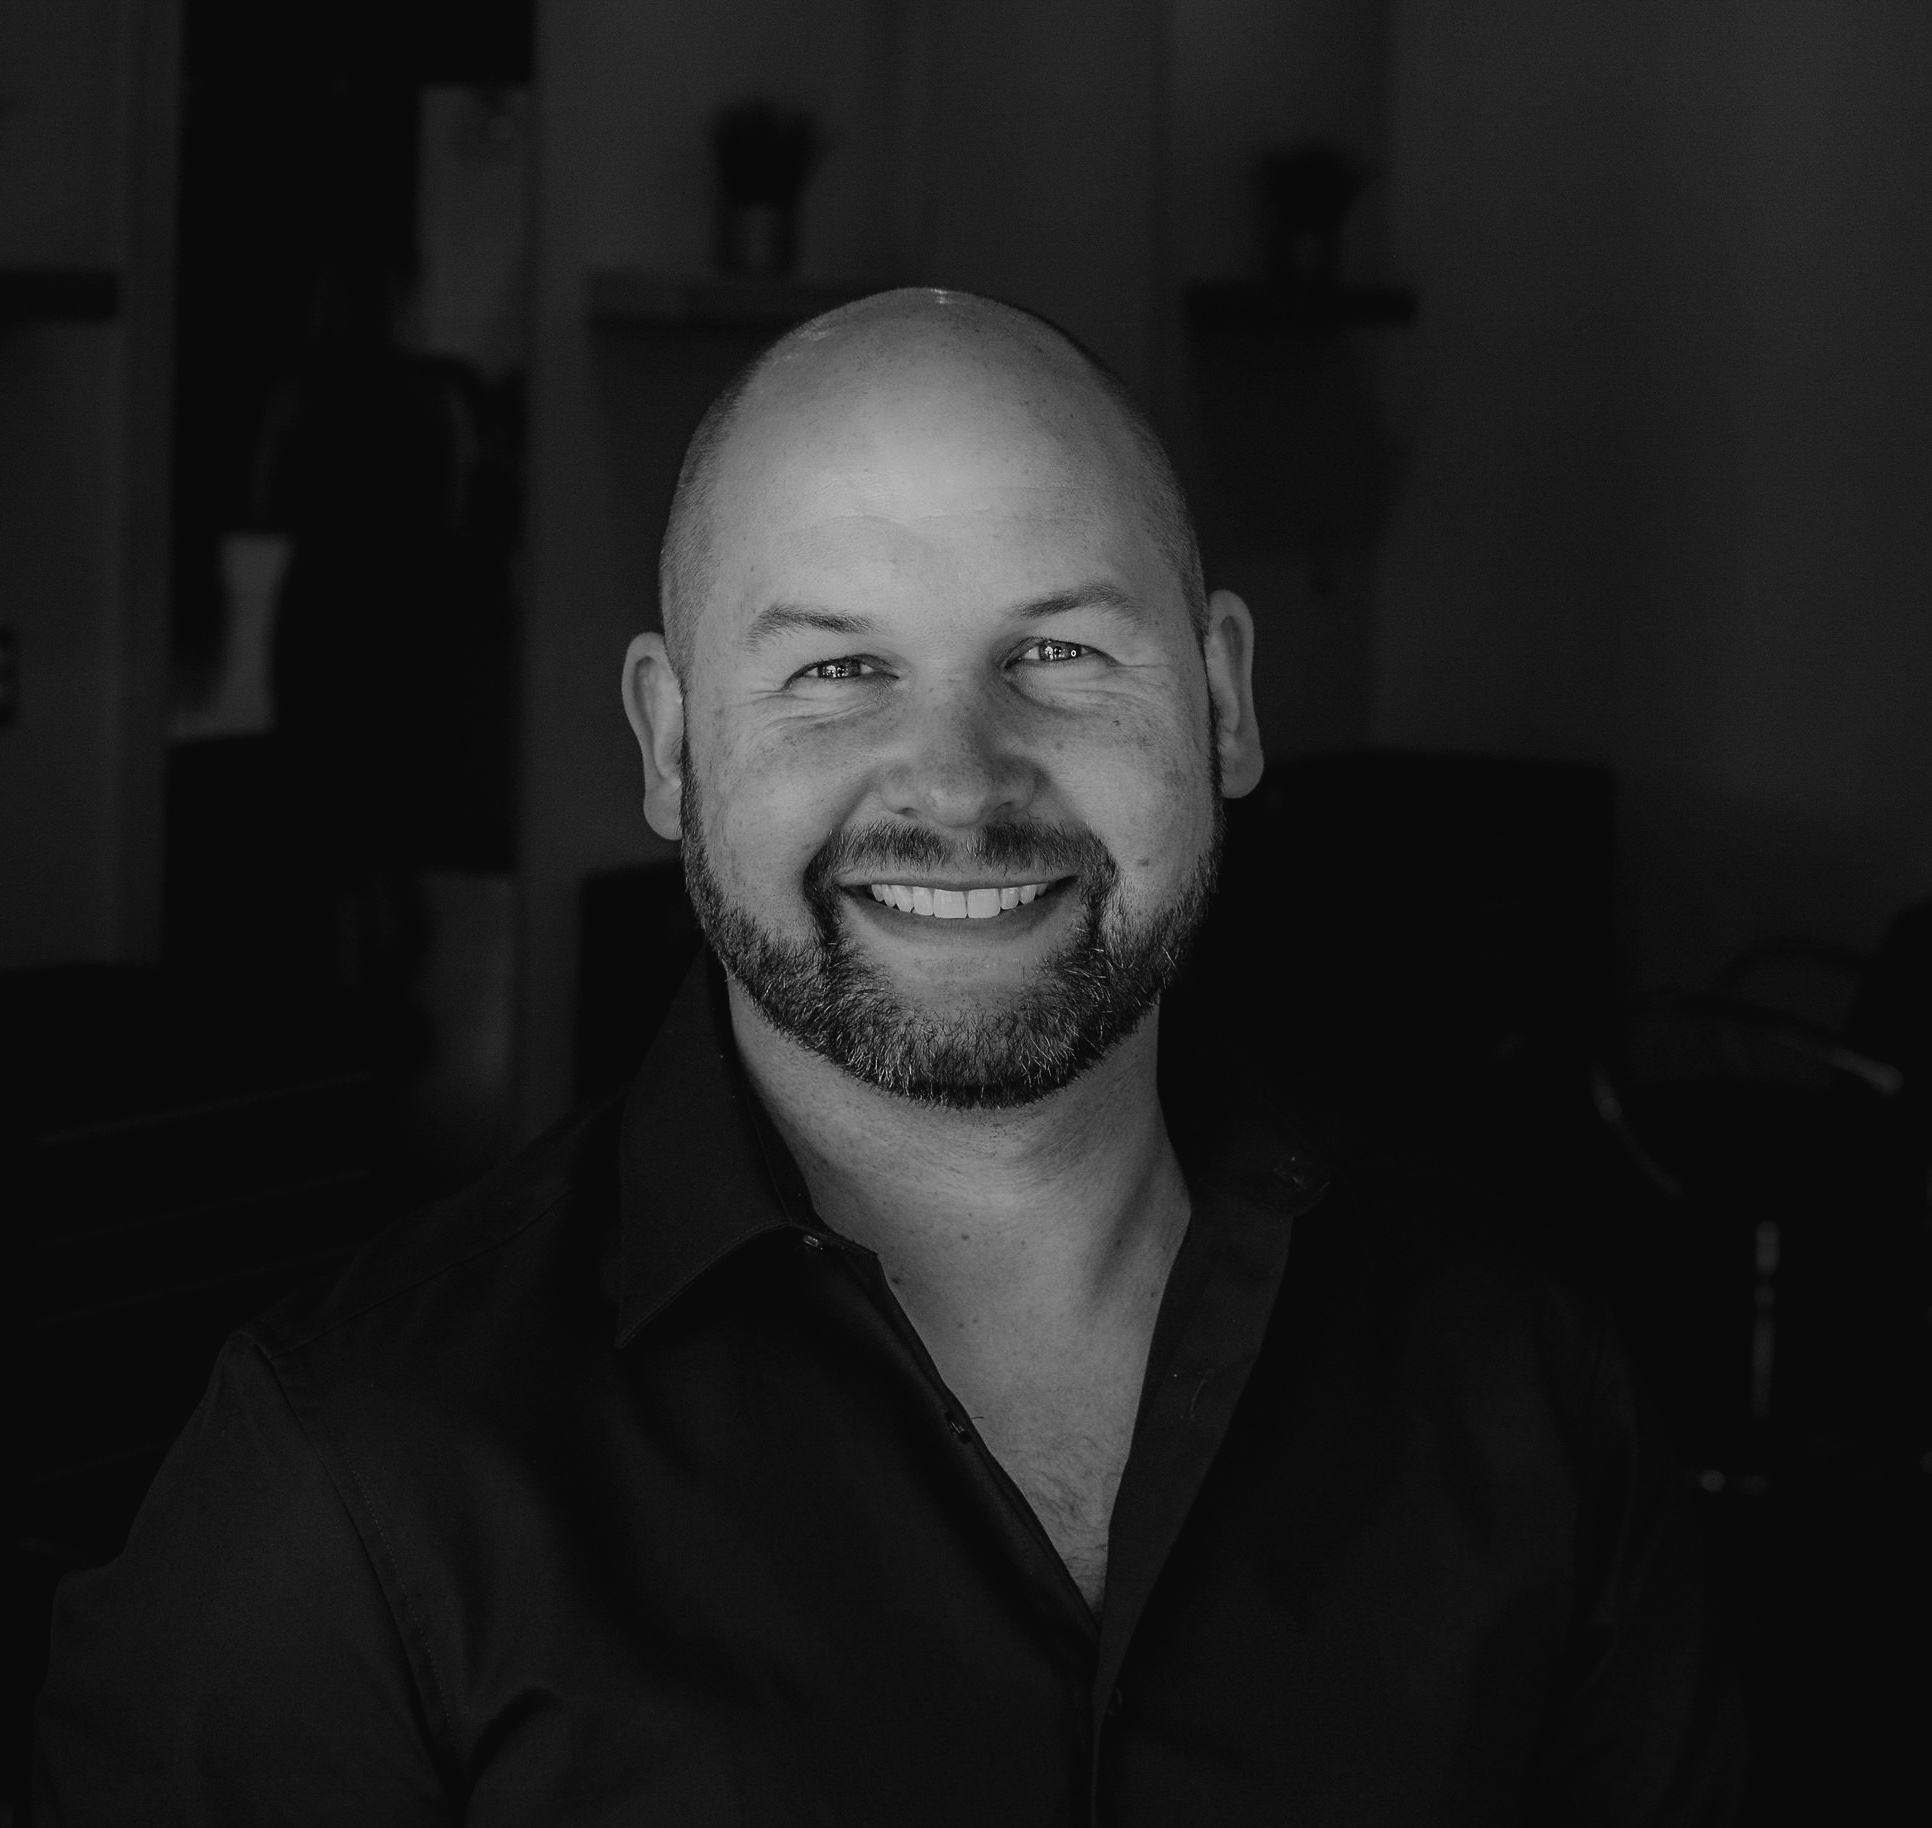 Joshua Perry, Owner & Stylist